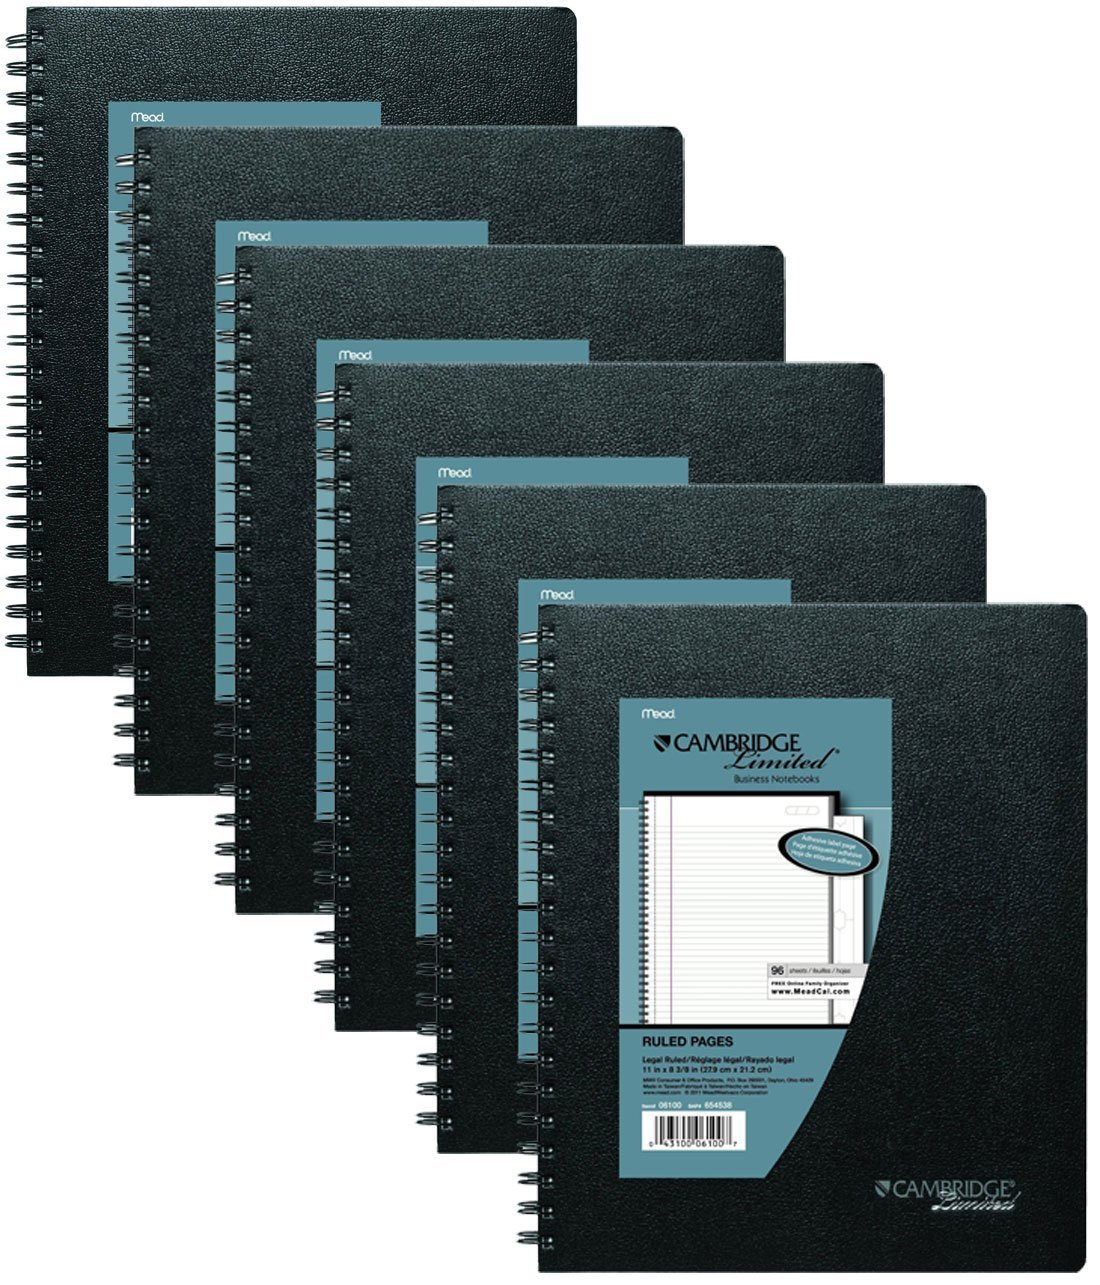 Mead Cambridge Business Notebook with Pocket, Hardbound, 8.25 x 11 Inches, Black, 6 Pack